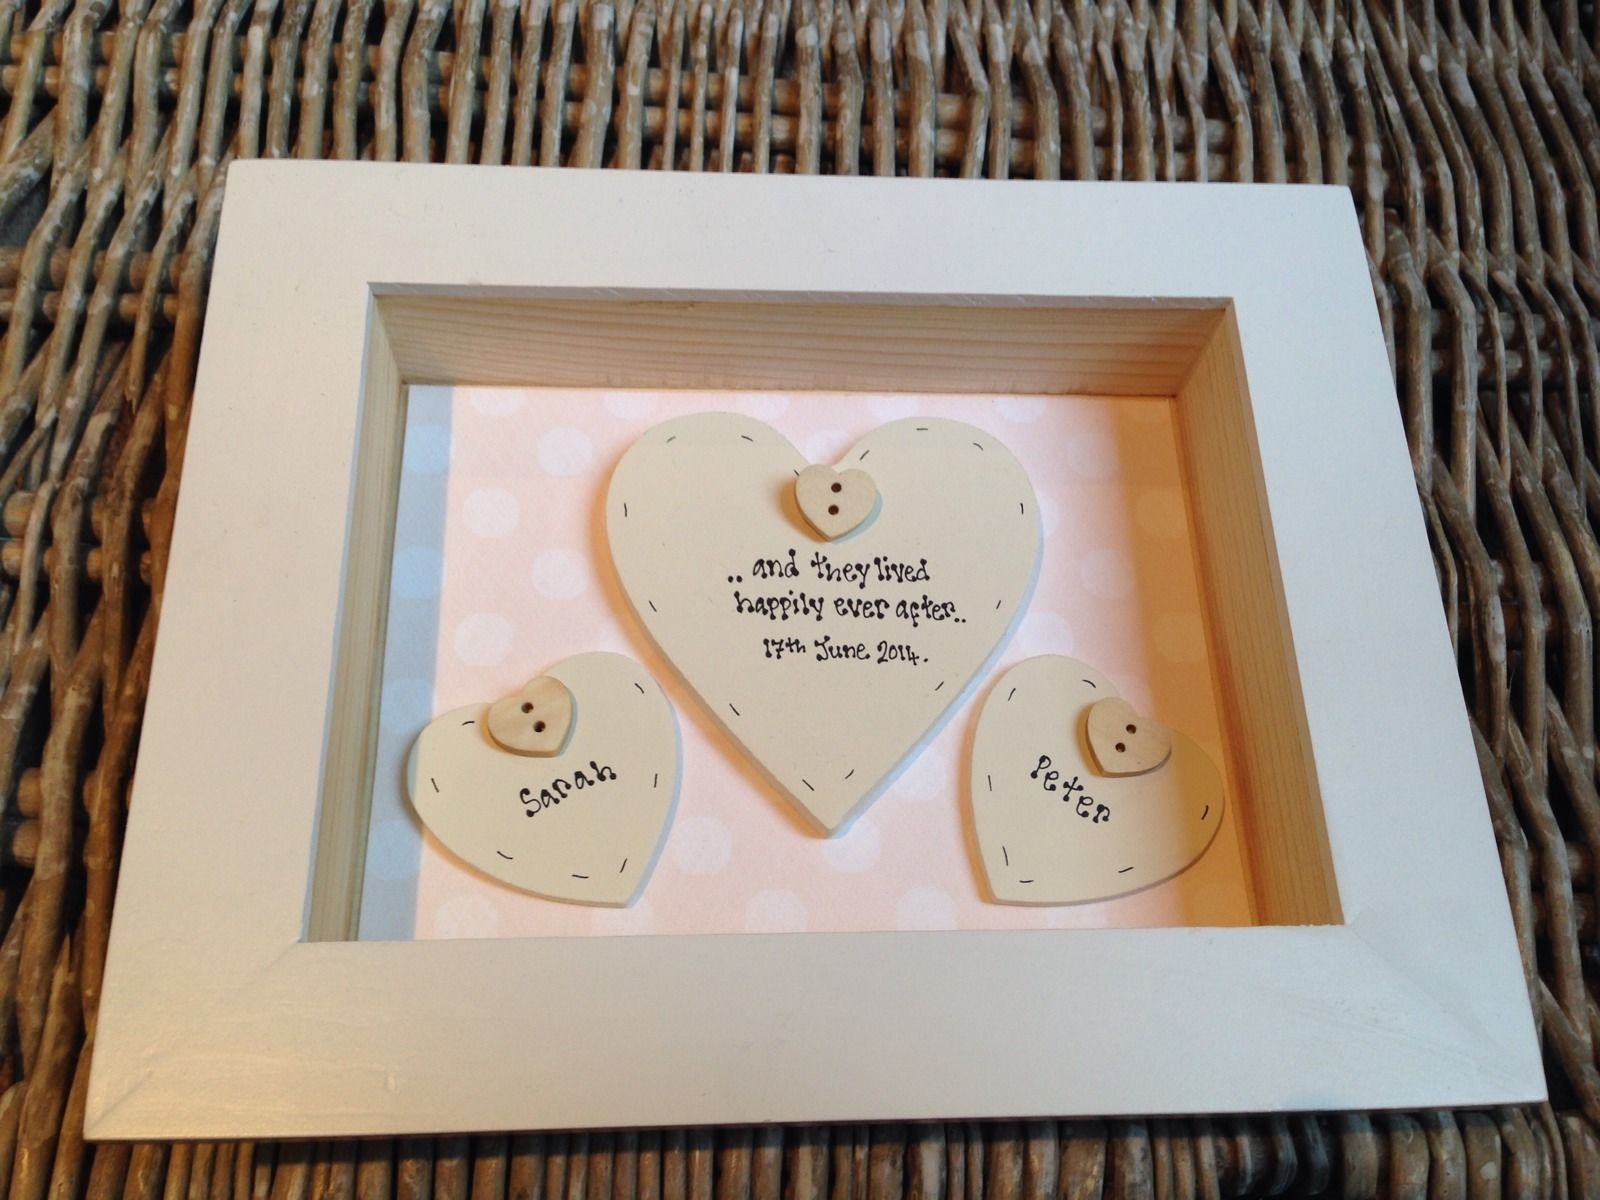 Wedding Gift For The Groom From The Bride: Shabby Personalised Chic Box Frame Gift For Bride & Groom